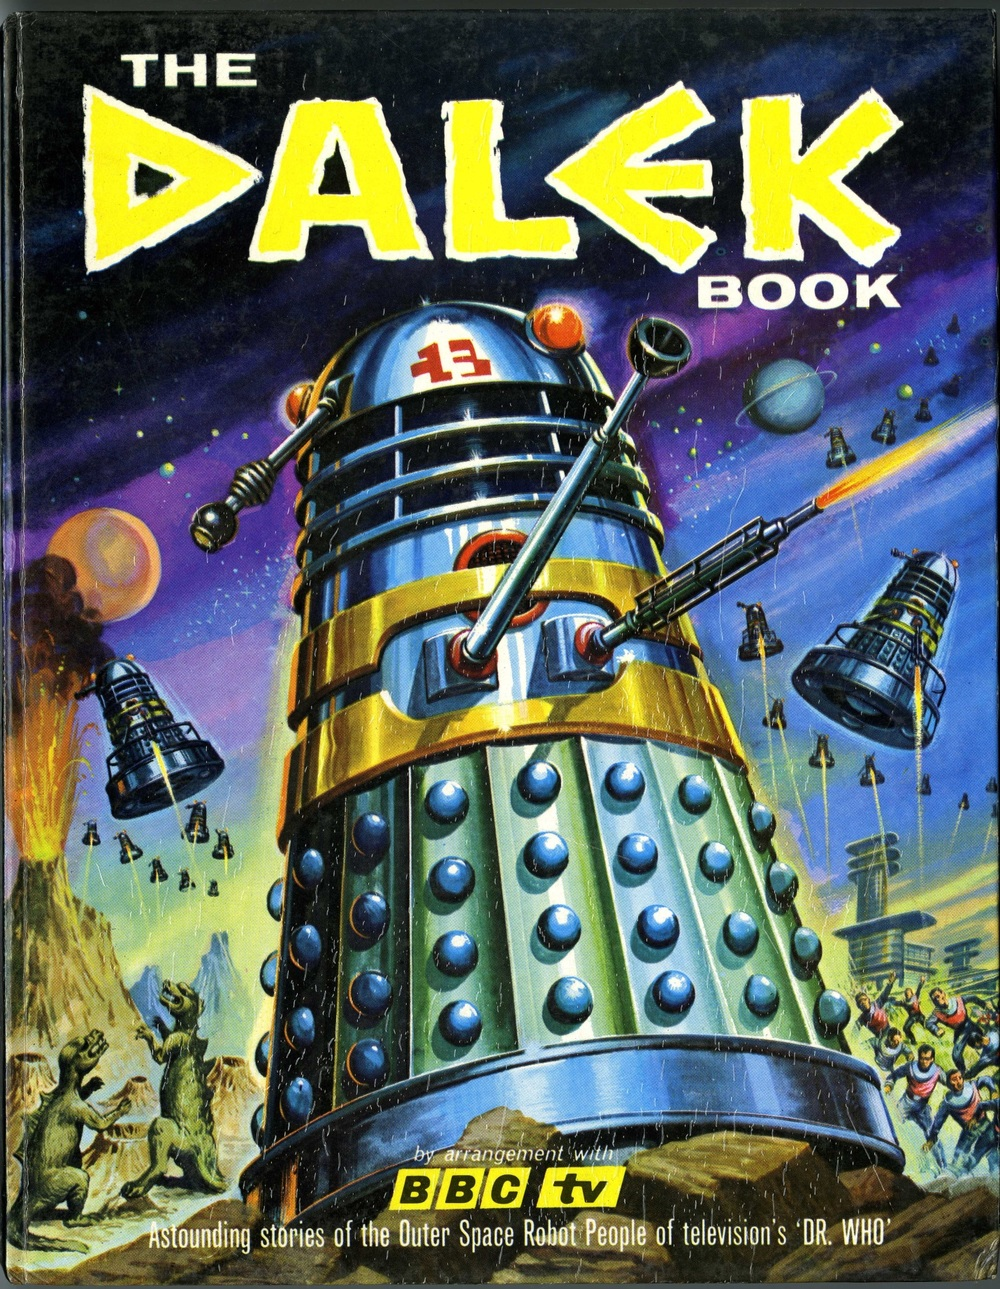 The Dalek Book. By David Whitaker and Terry Nation. Published by Panther Books in association with Souvenir Press